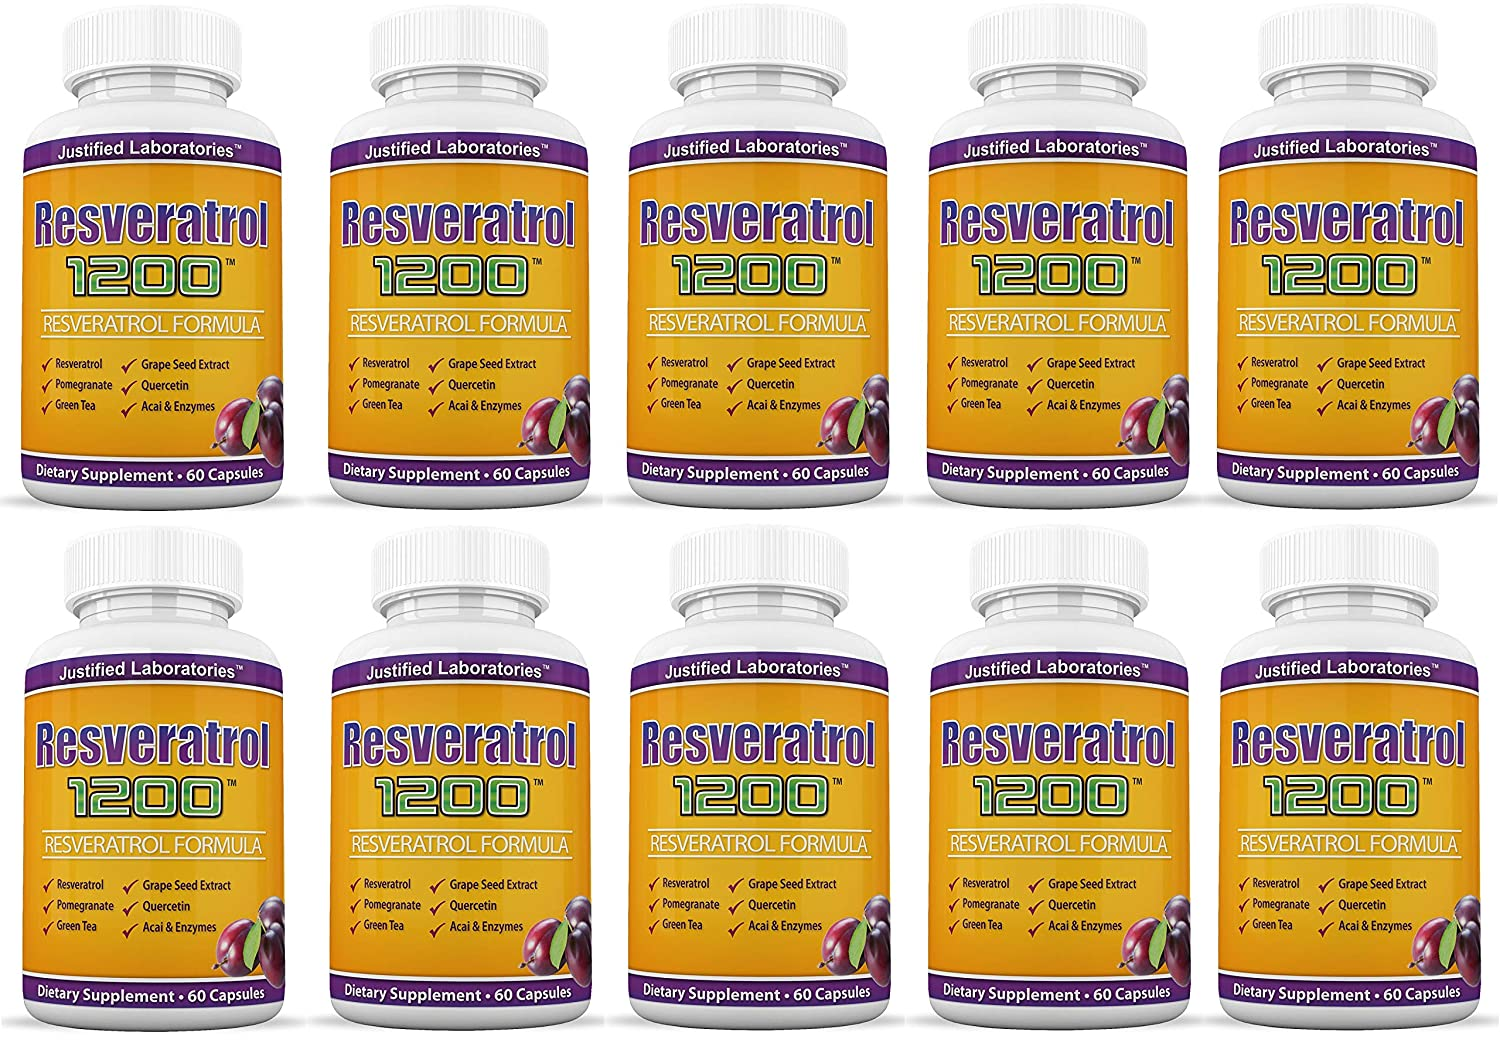 Amazon.com: Resveratrol 1200 Contains Green Tea Acai Grape Seed Extract and Other Antioxidants for Anti-Aging and Cardiovascular Health 60 Capsules Per ...